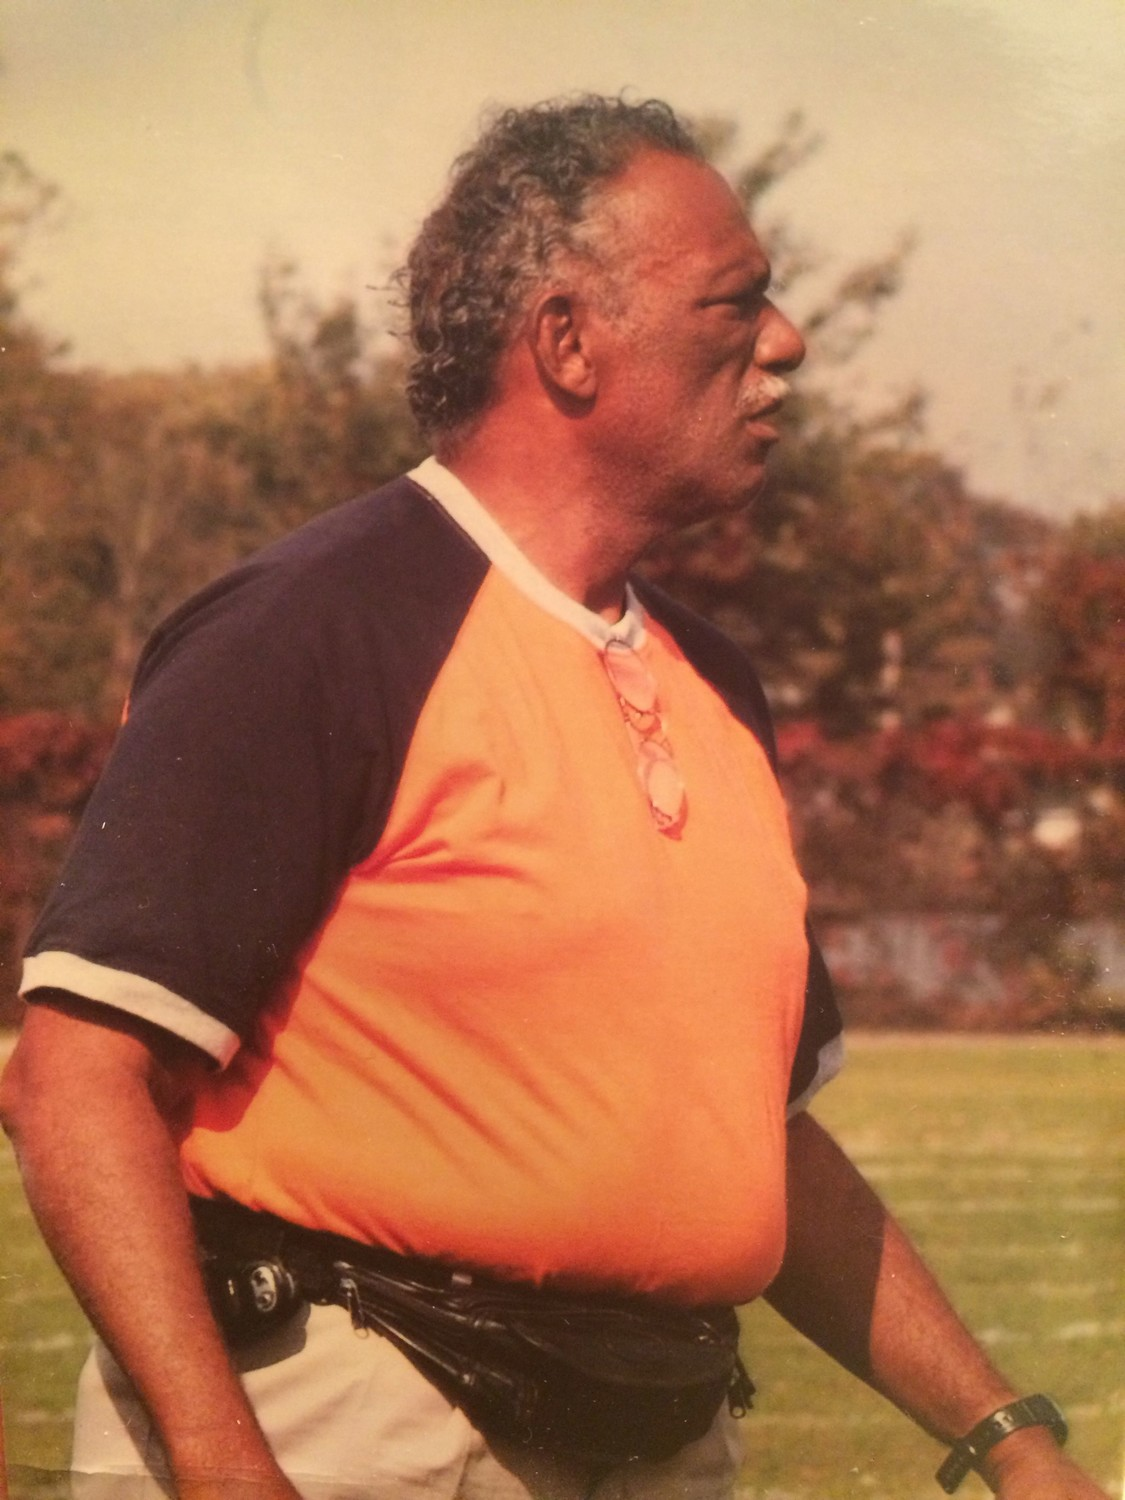 Britt dedicated more than 40 years of his life to coaching and mentoring students in the Malverne school district.